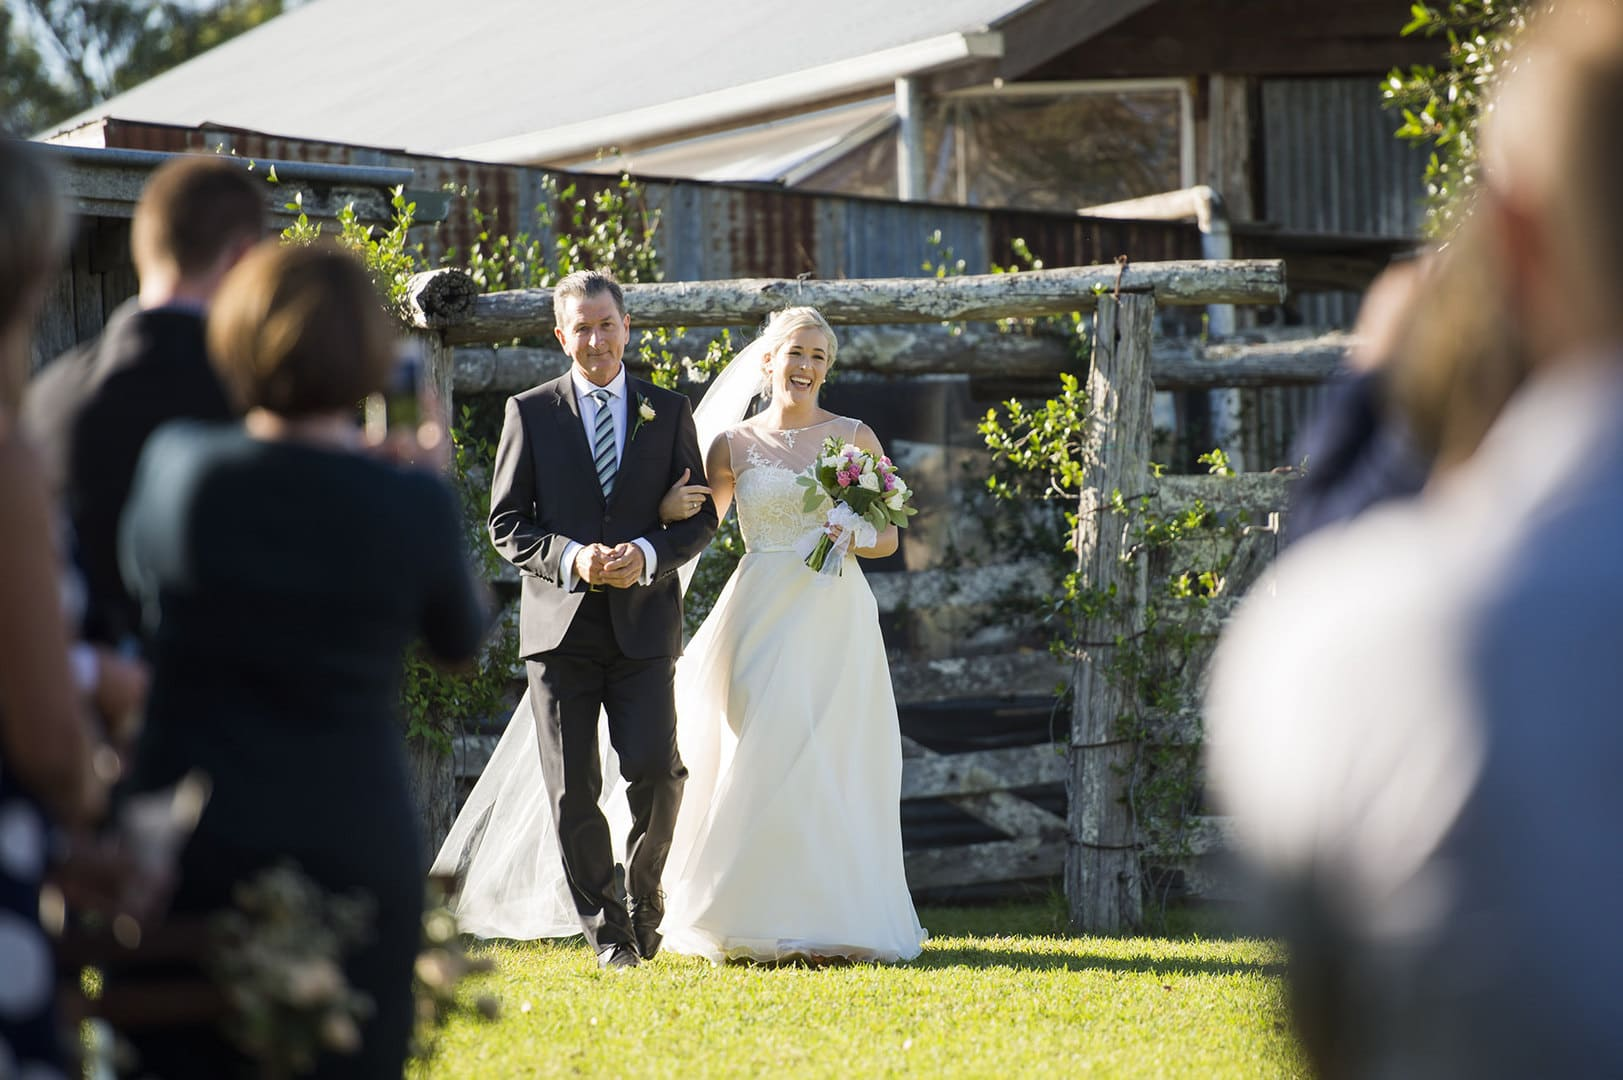 Yandina Station Experience walking down the aisle